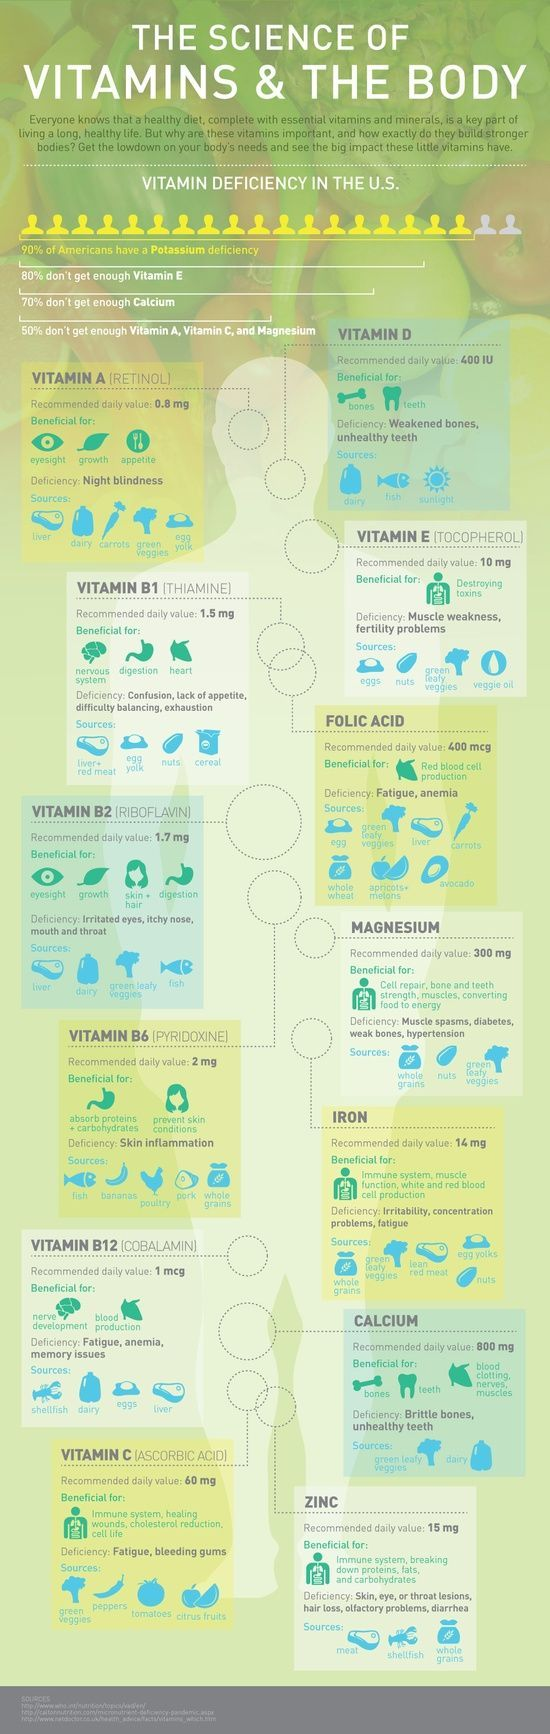 The Science of Vitamins and the Body #Infographic Food makes our bodies work!